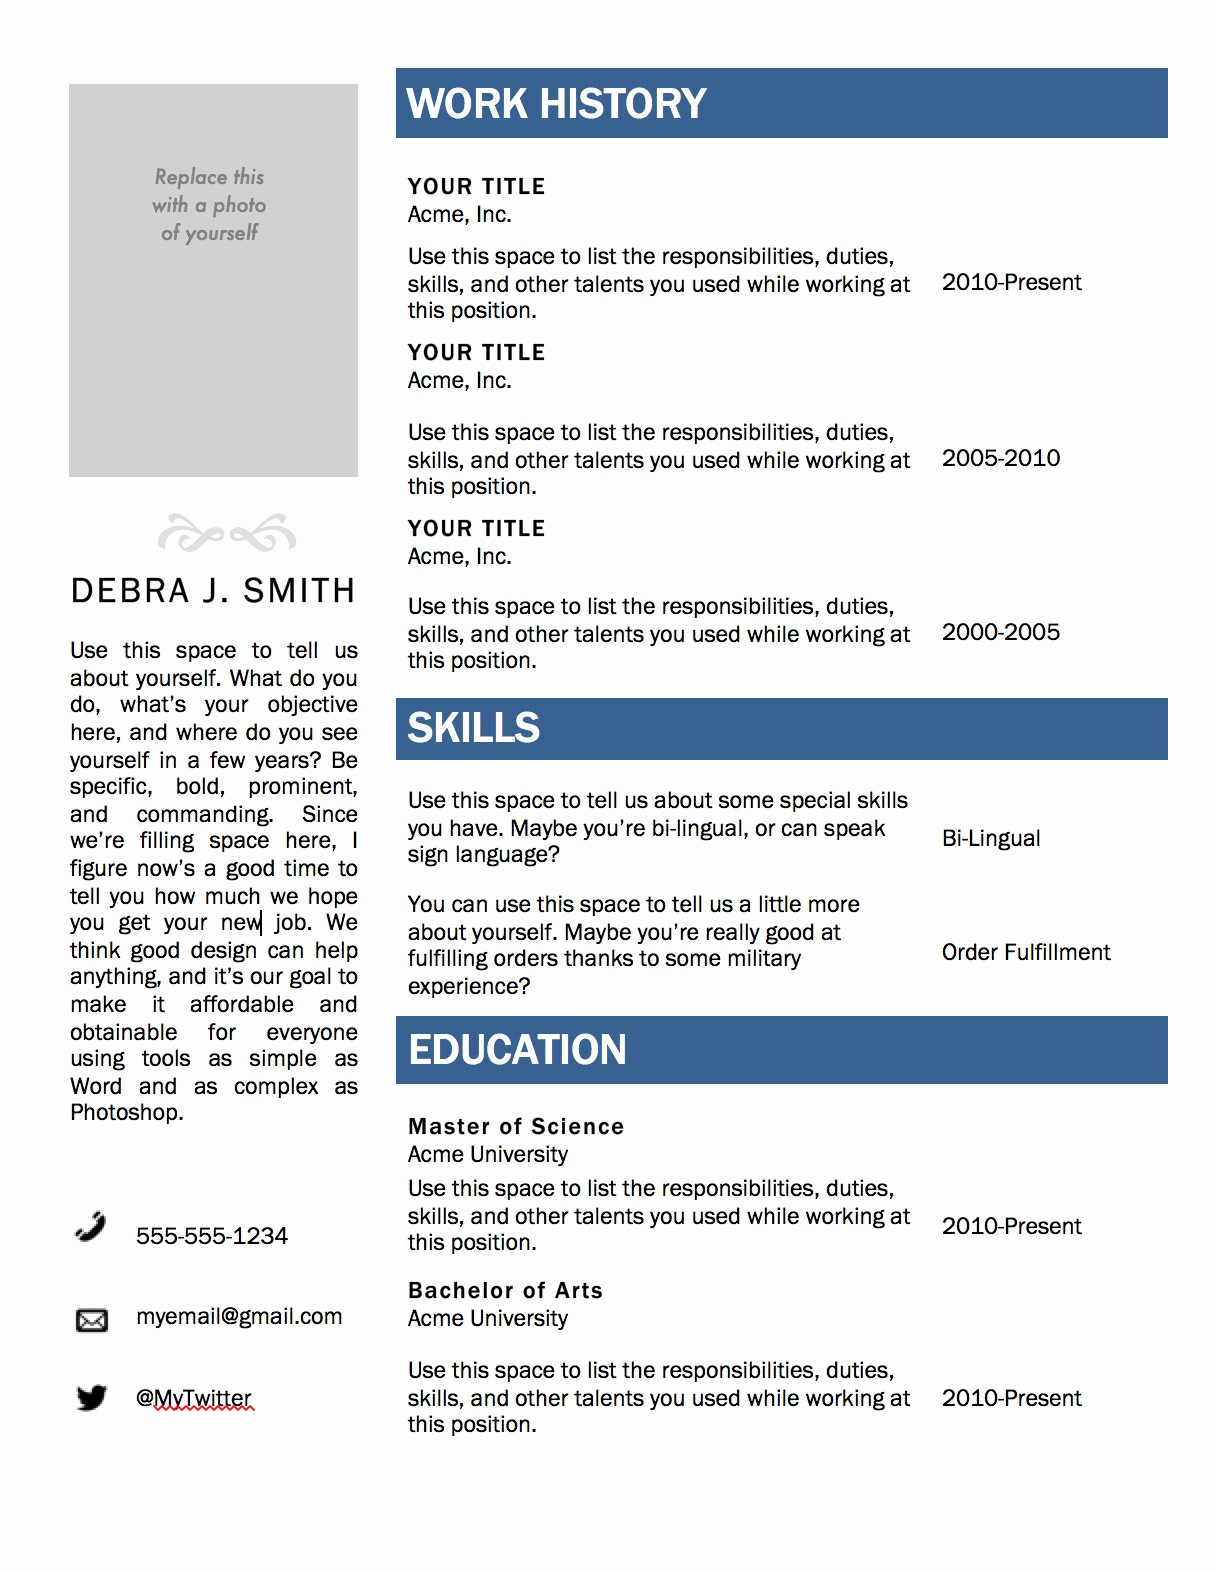 Ms Word Templates for Resumes Best Of Free Microsoft Word Resume Template — Superpixel